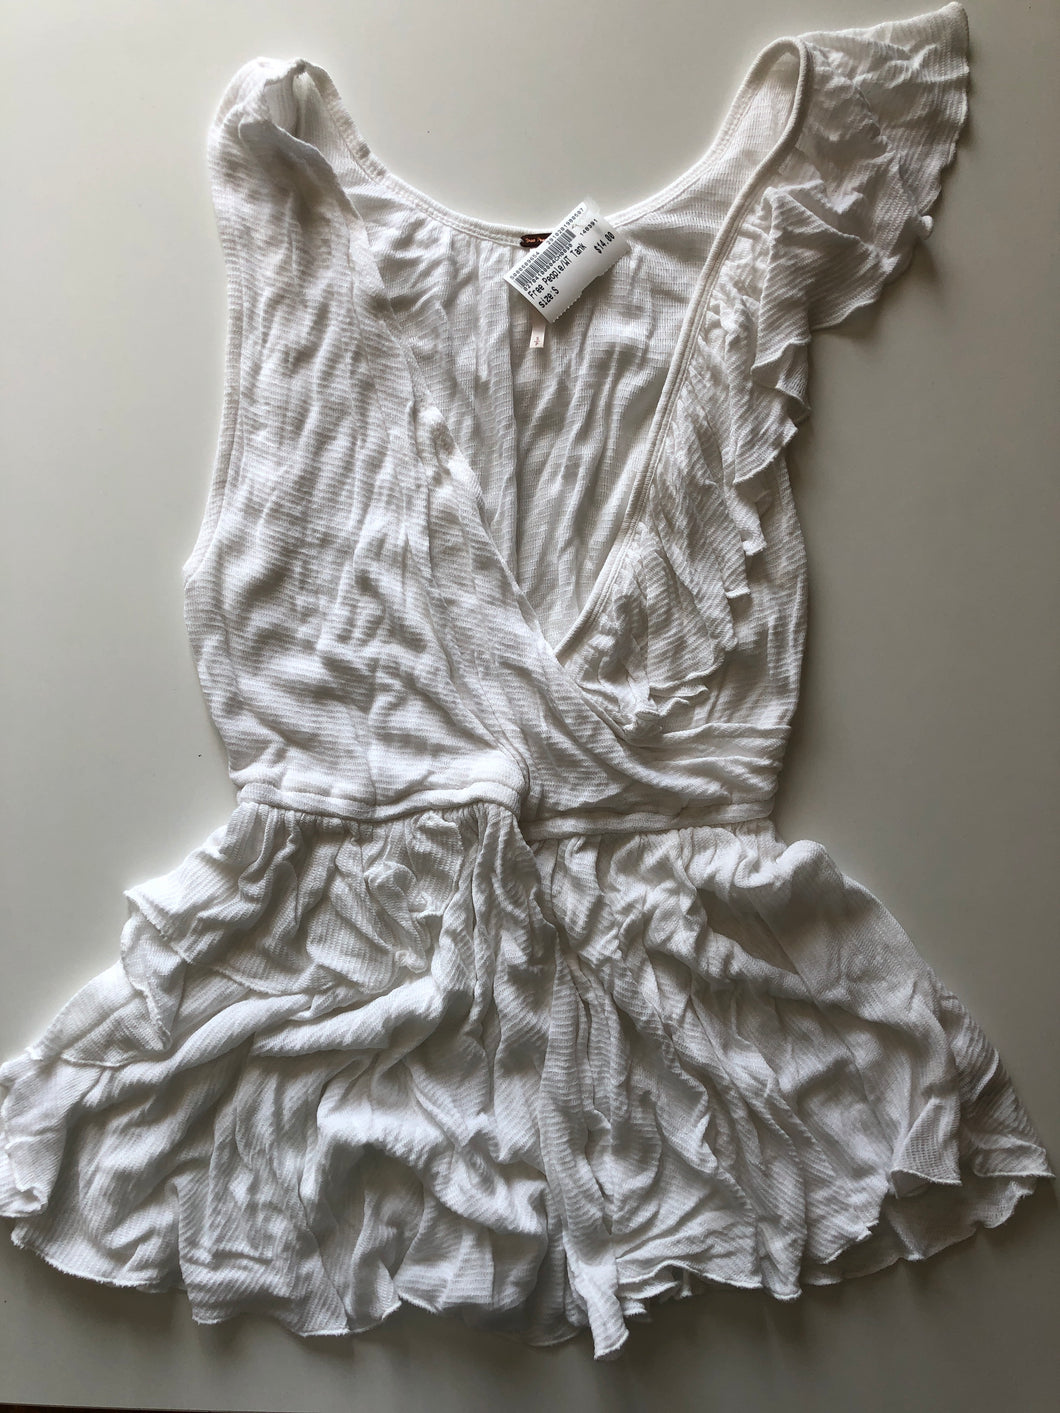 Gently Used Women's Free People Top Size S